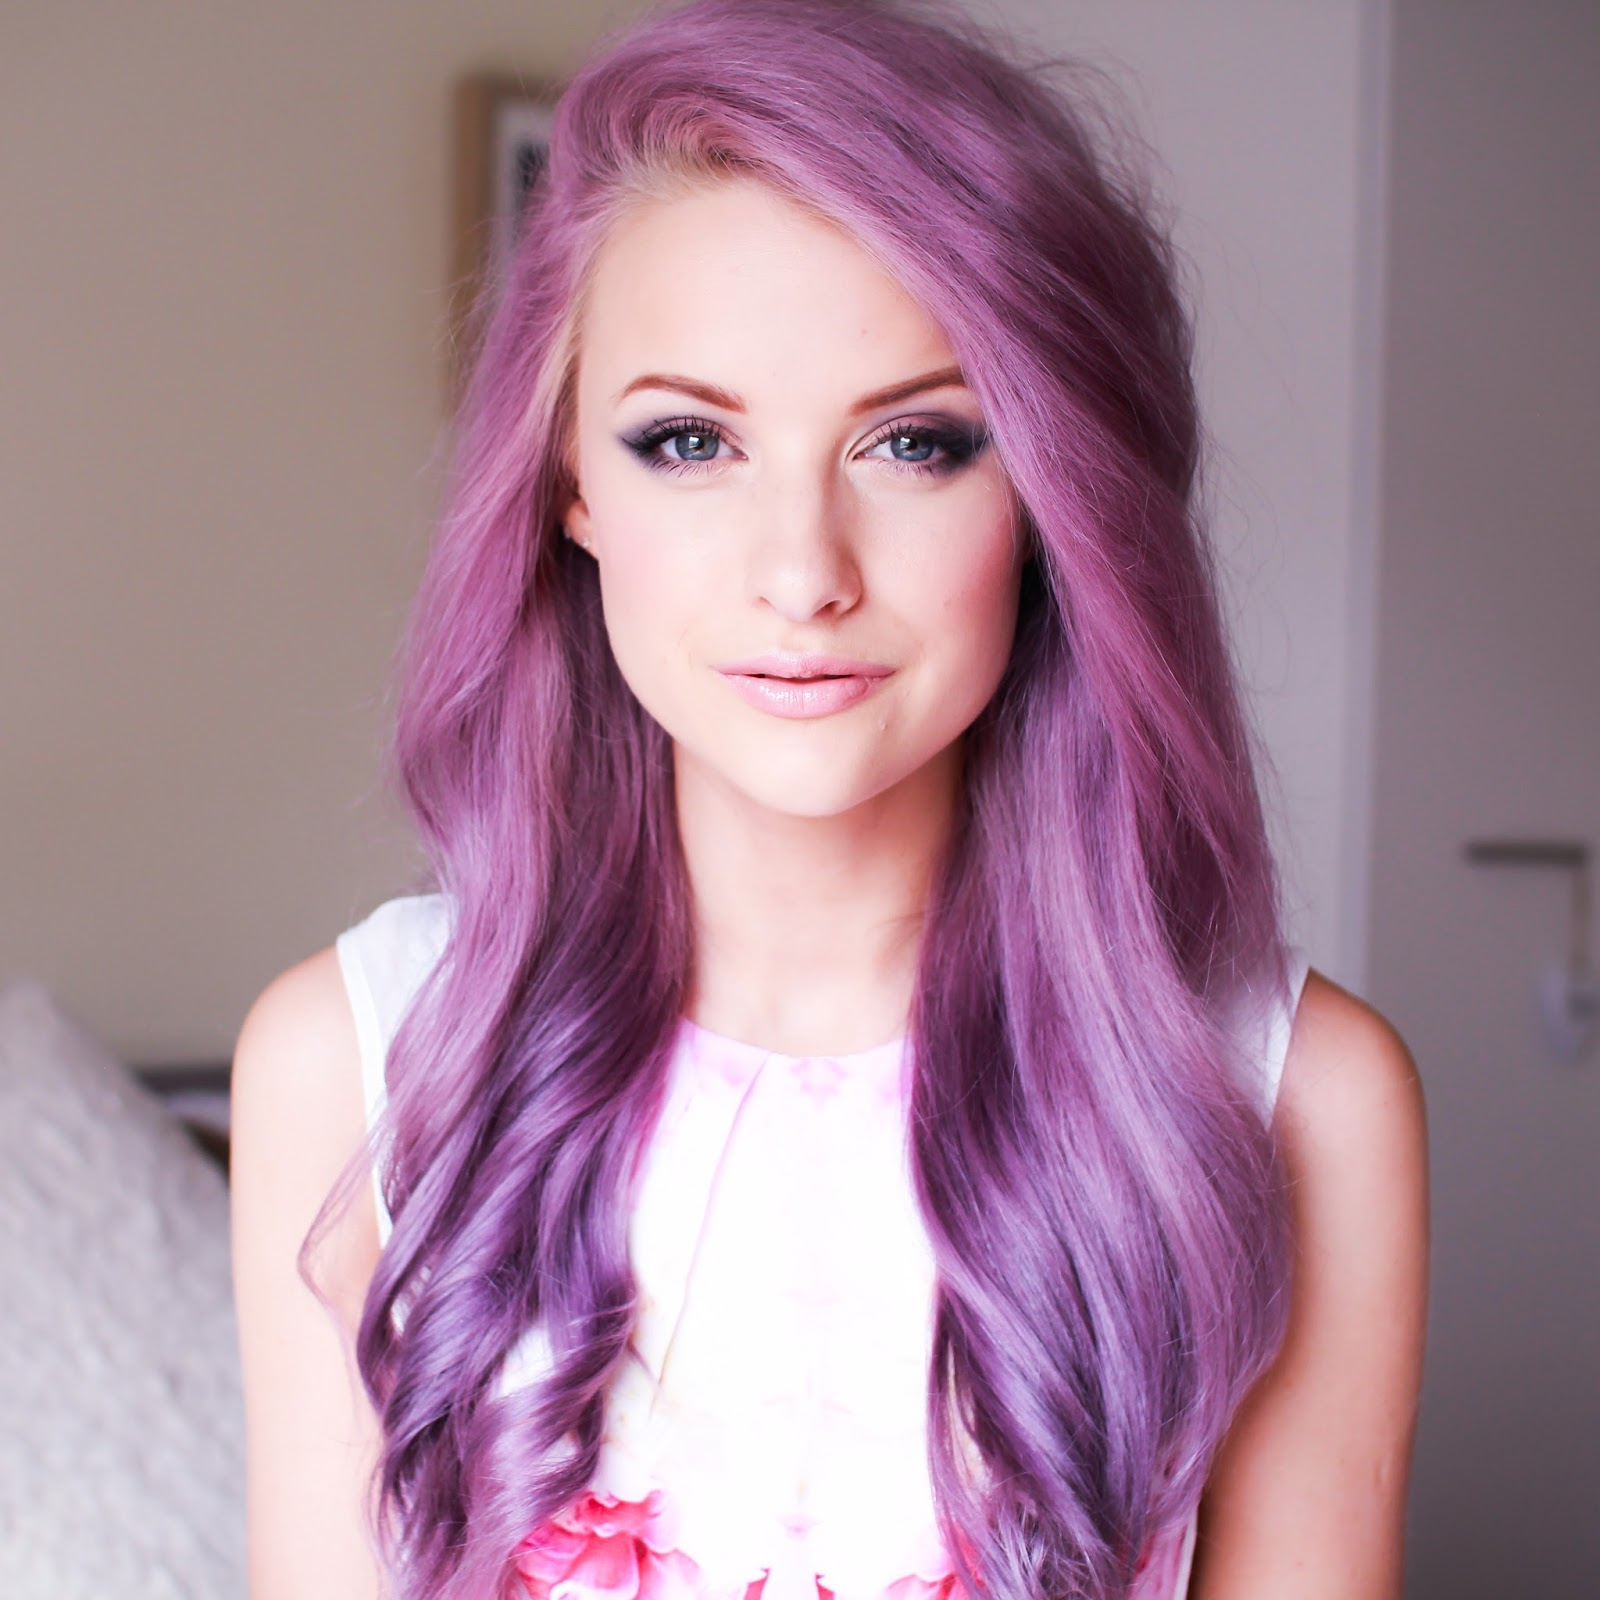 Girls With Light Purple Hair Tumblr Hair Purple Skin Light skin